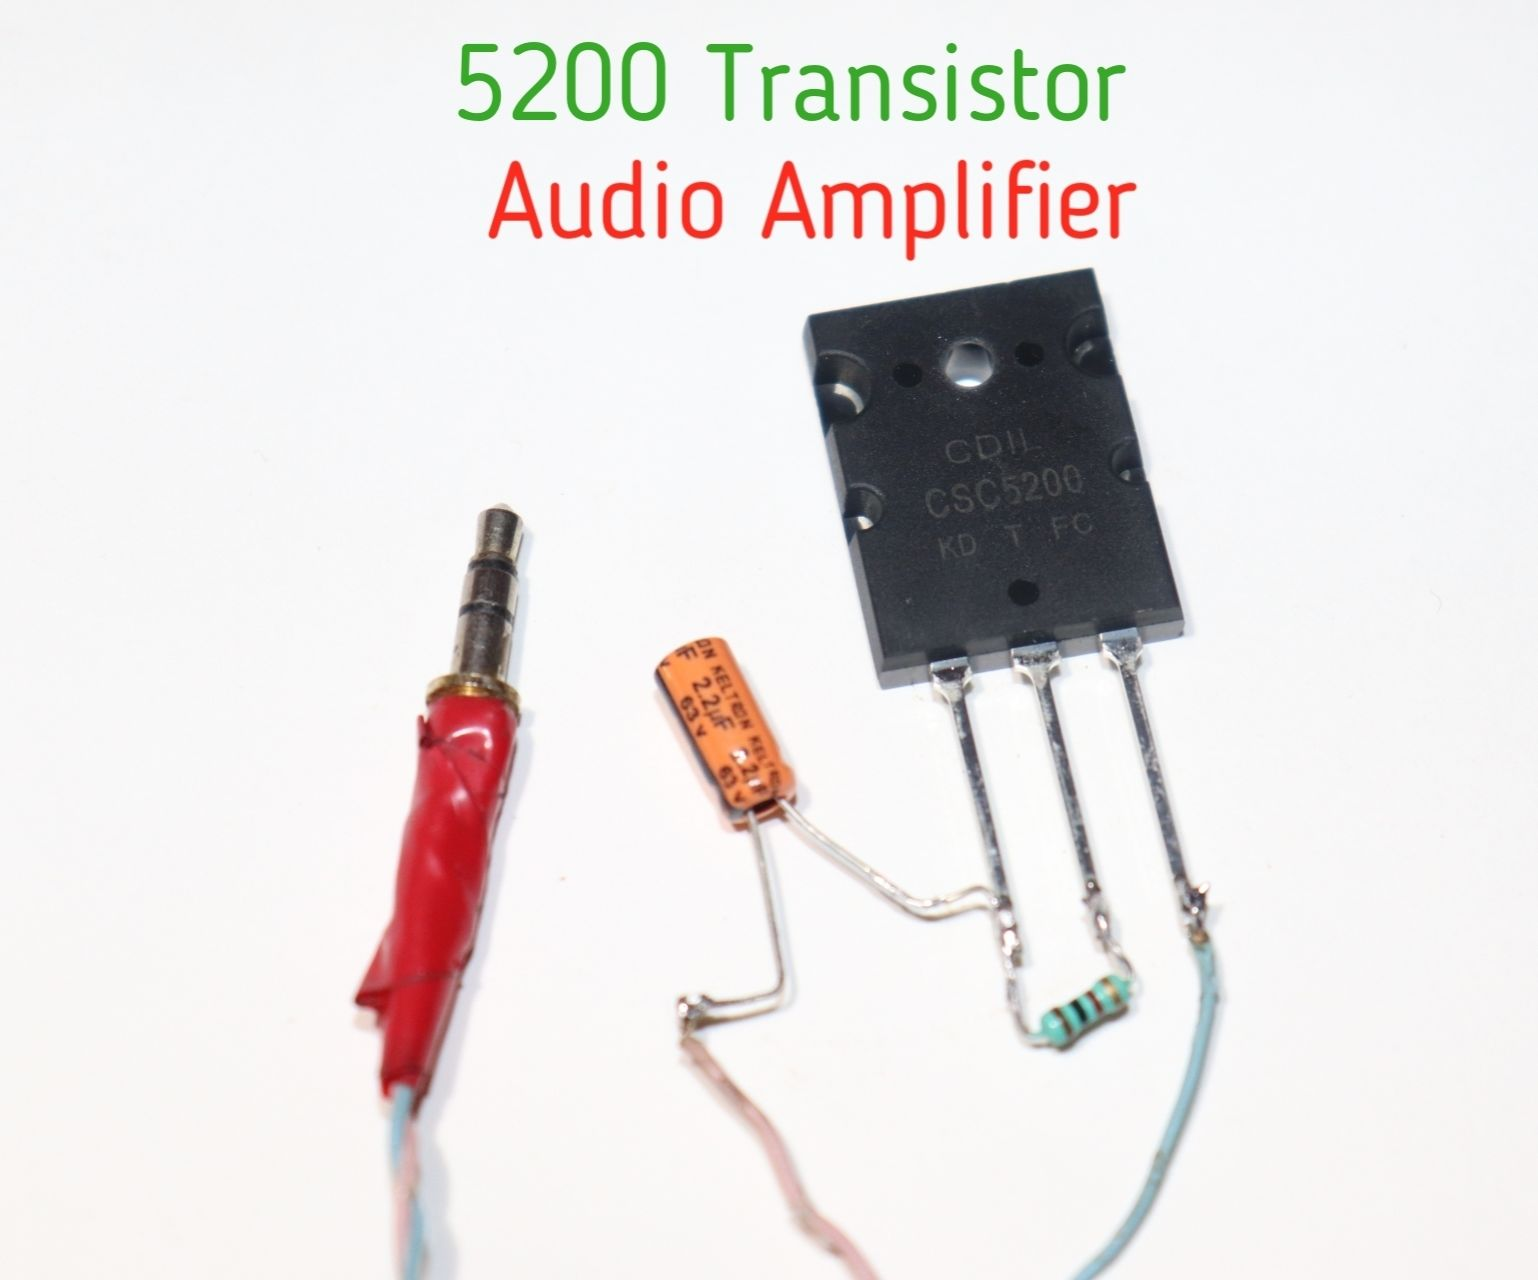 How to Make 5200 Transistor to Audio Amplifier